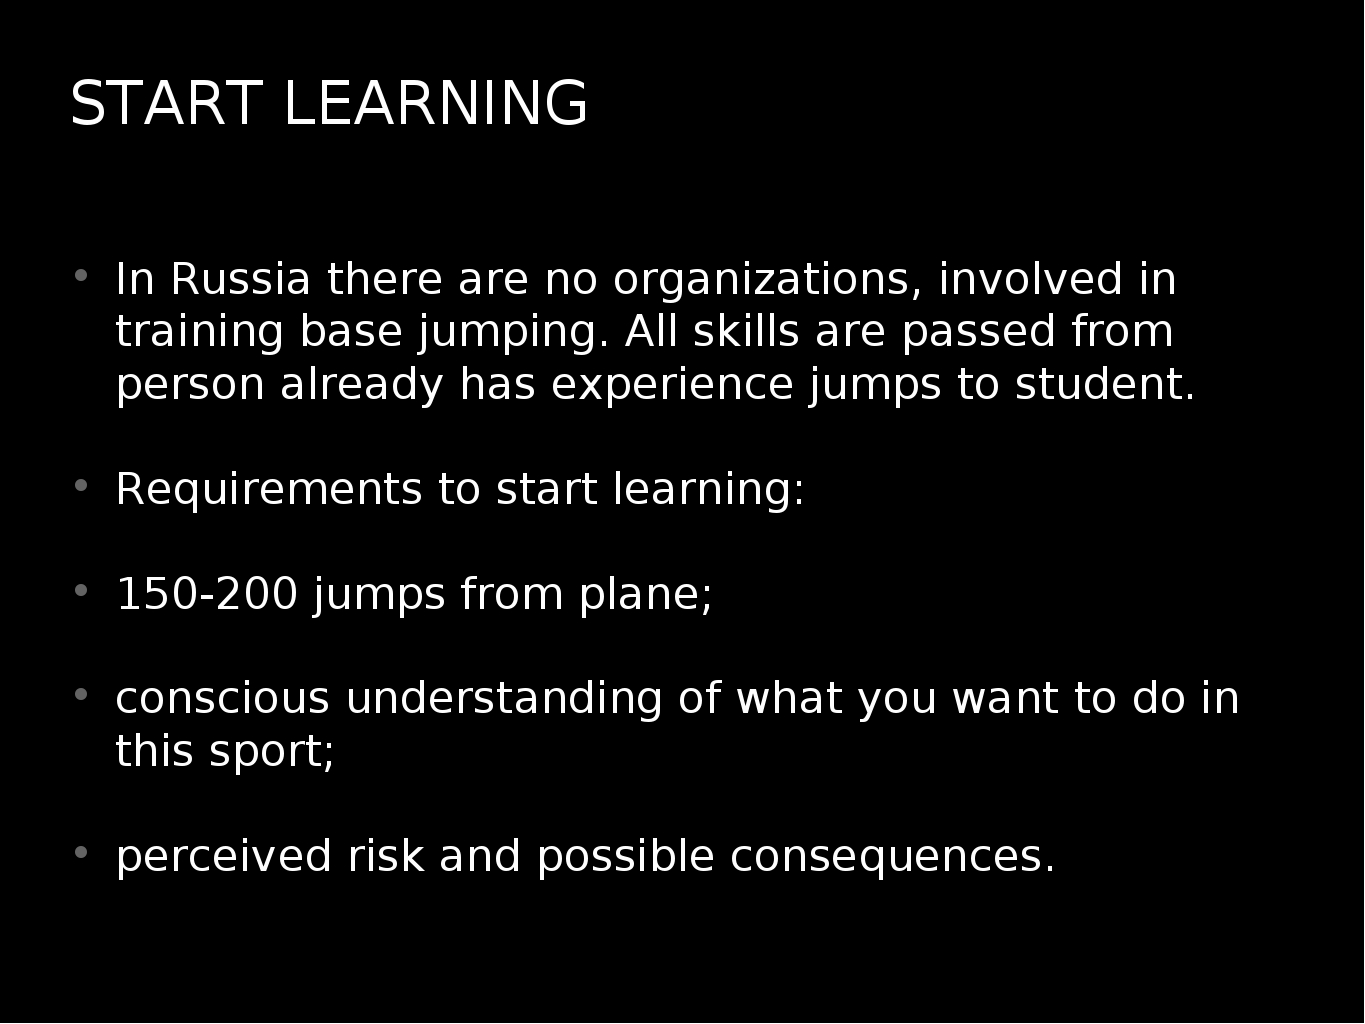 START LEARNING In Russia there are no organizations, involved in training bas...